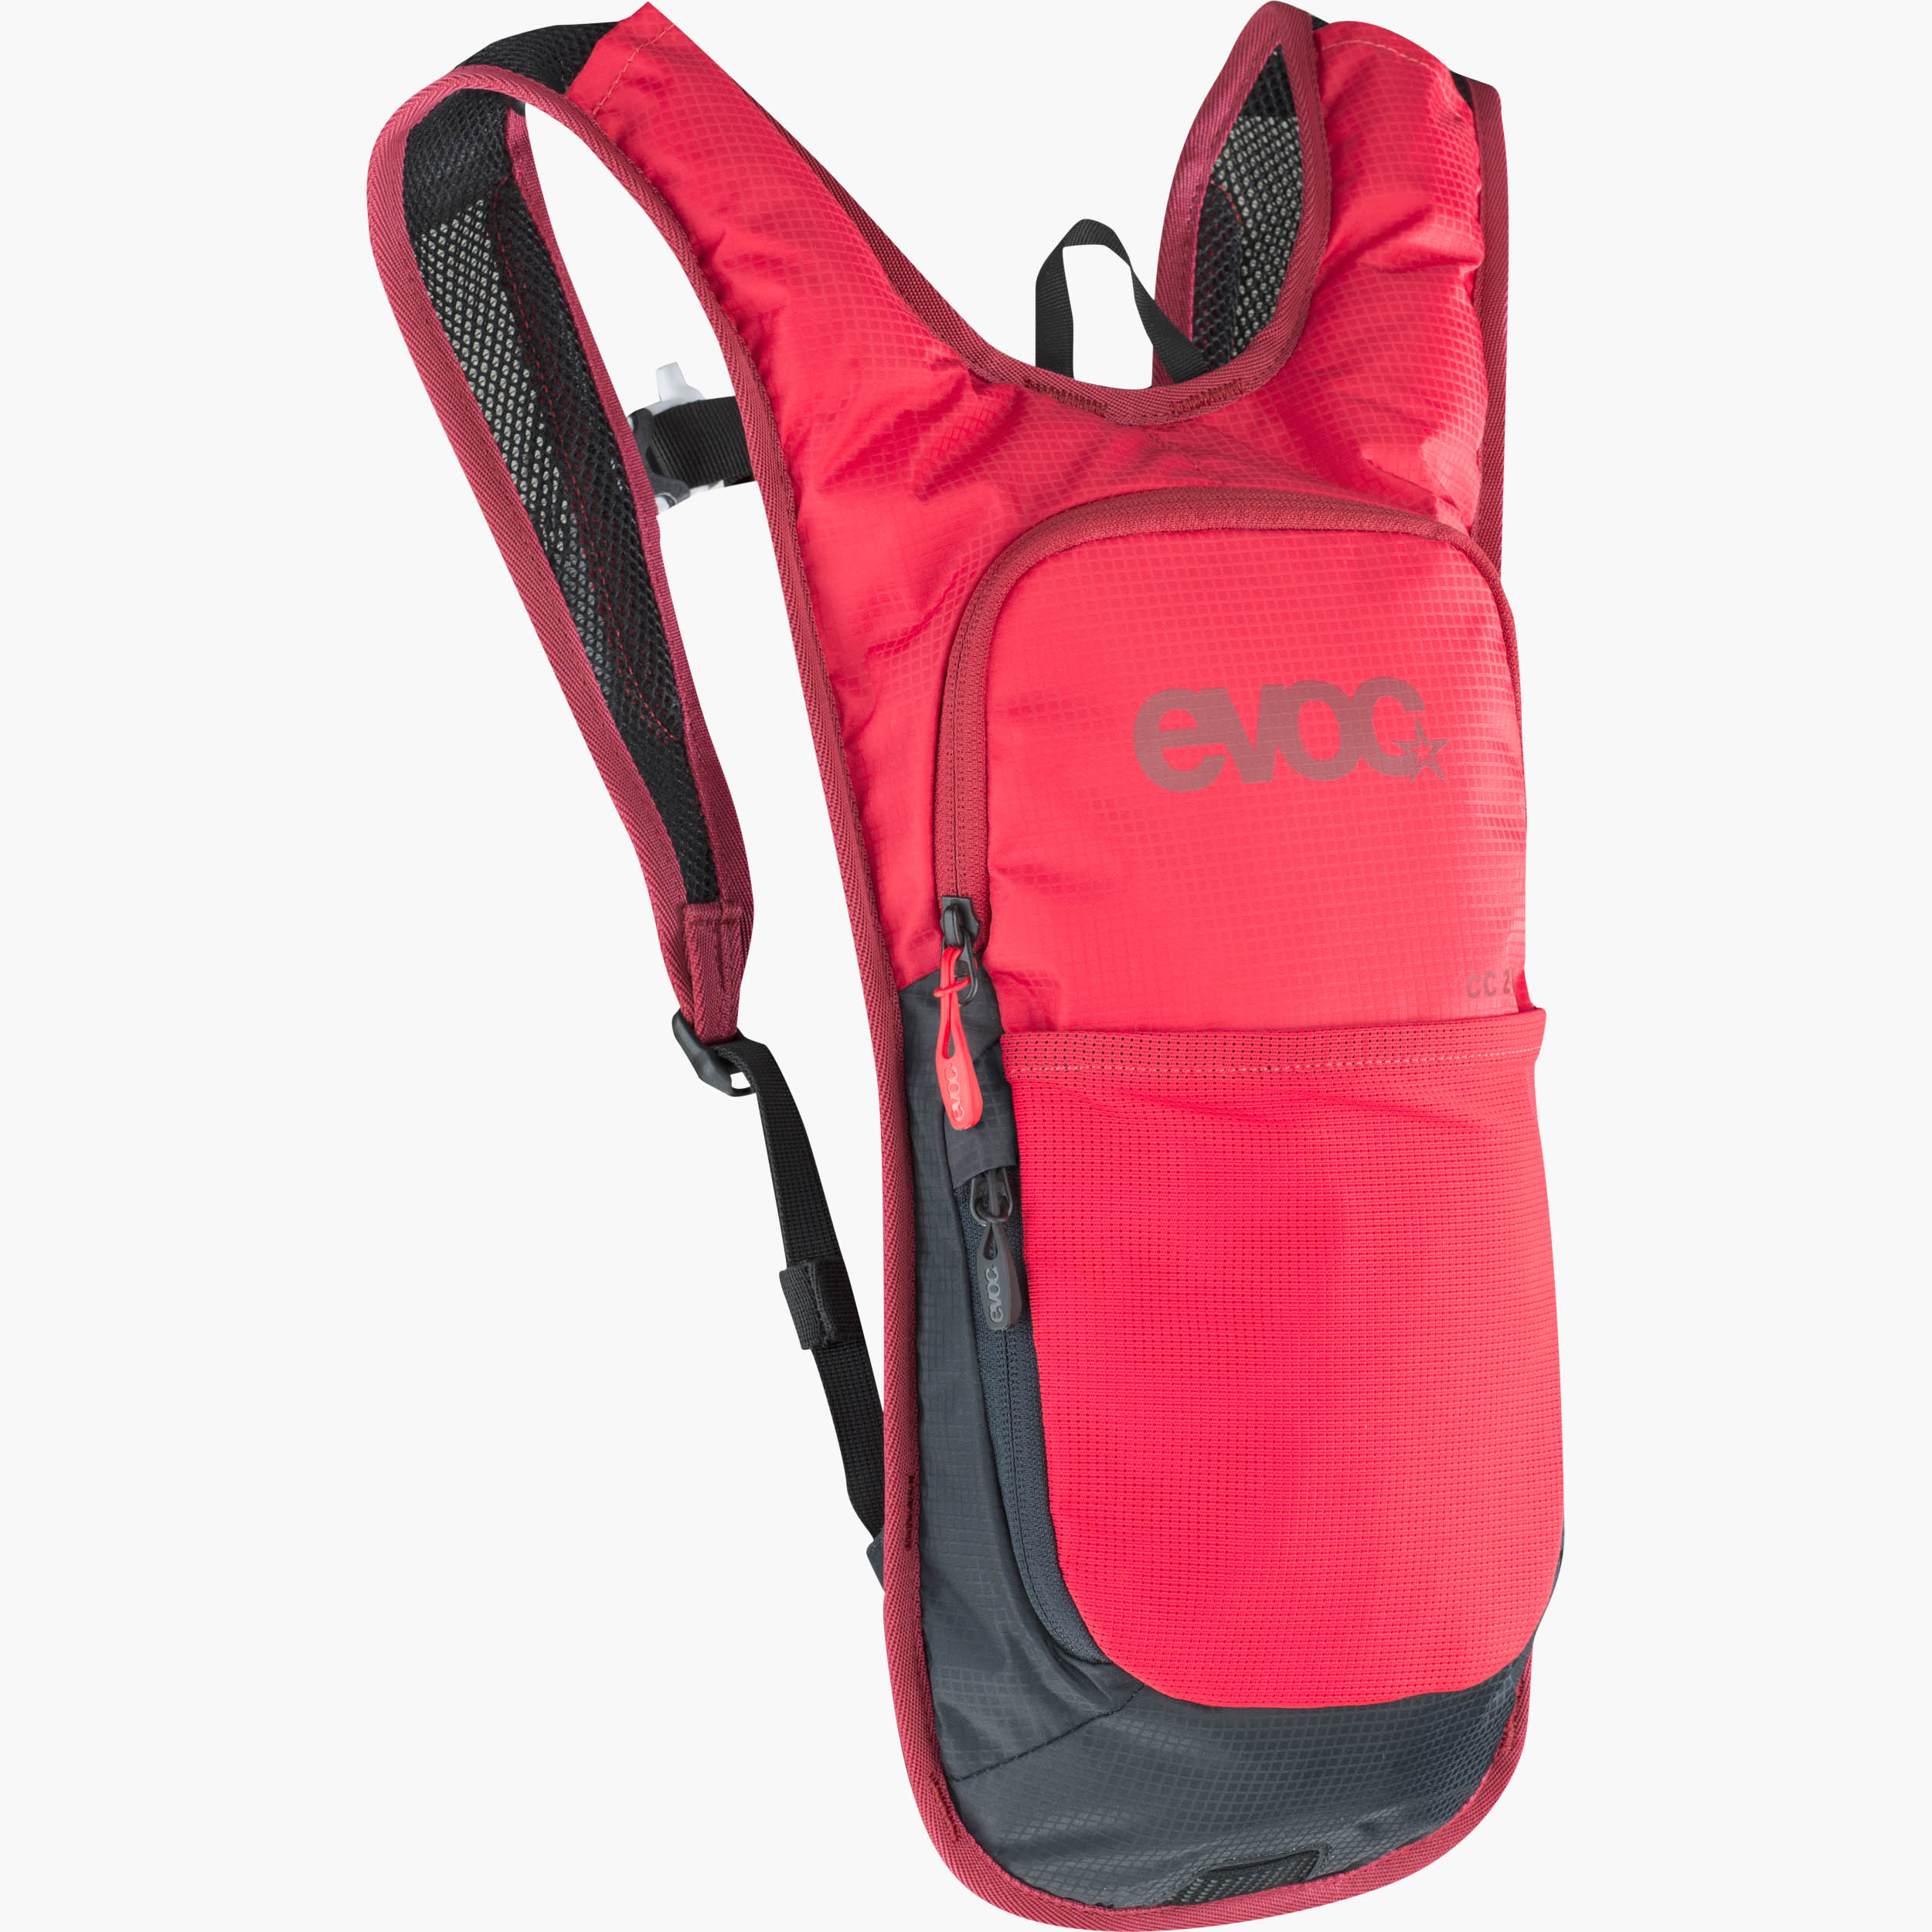 CC 2 + HYDRATION BLADDER 2